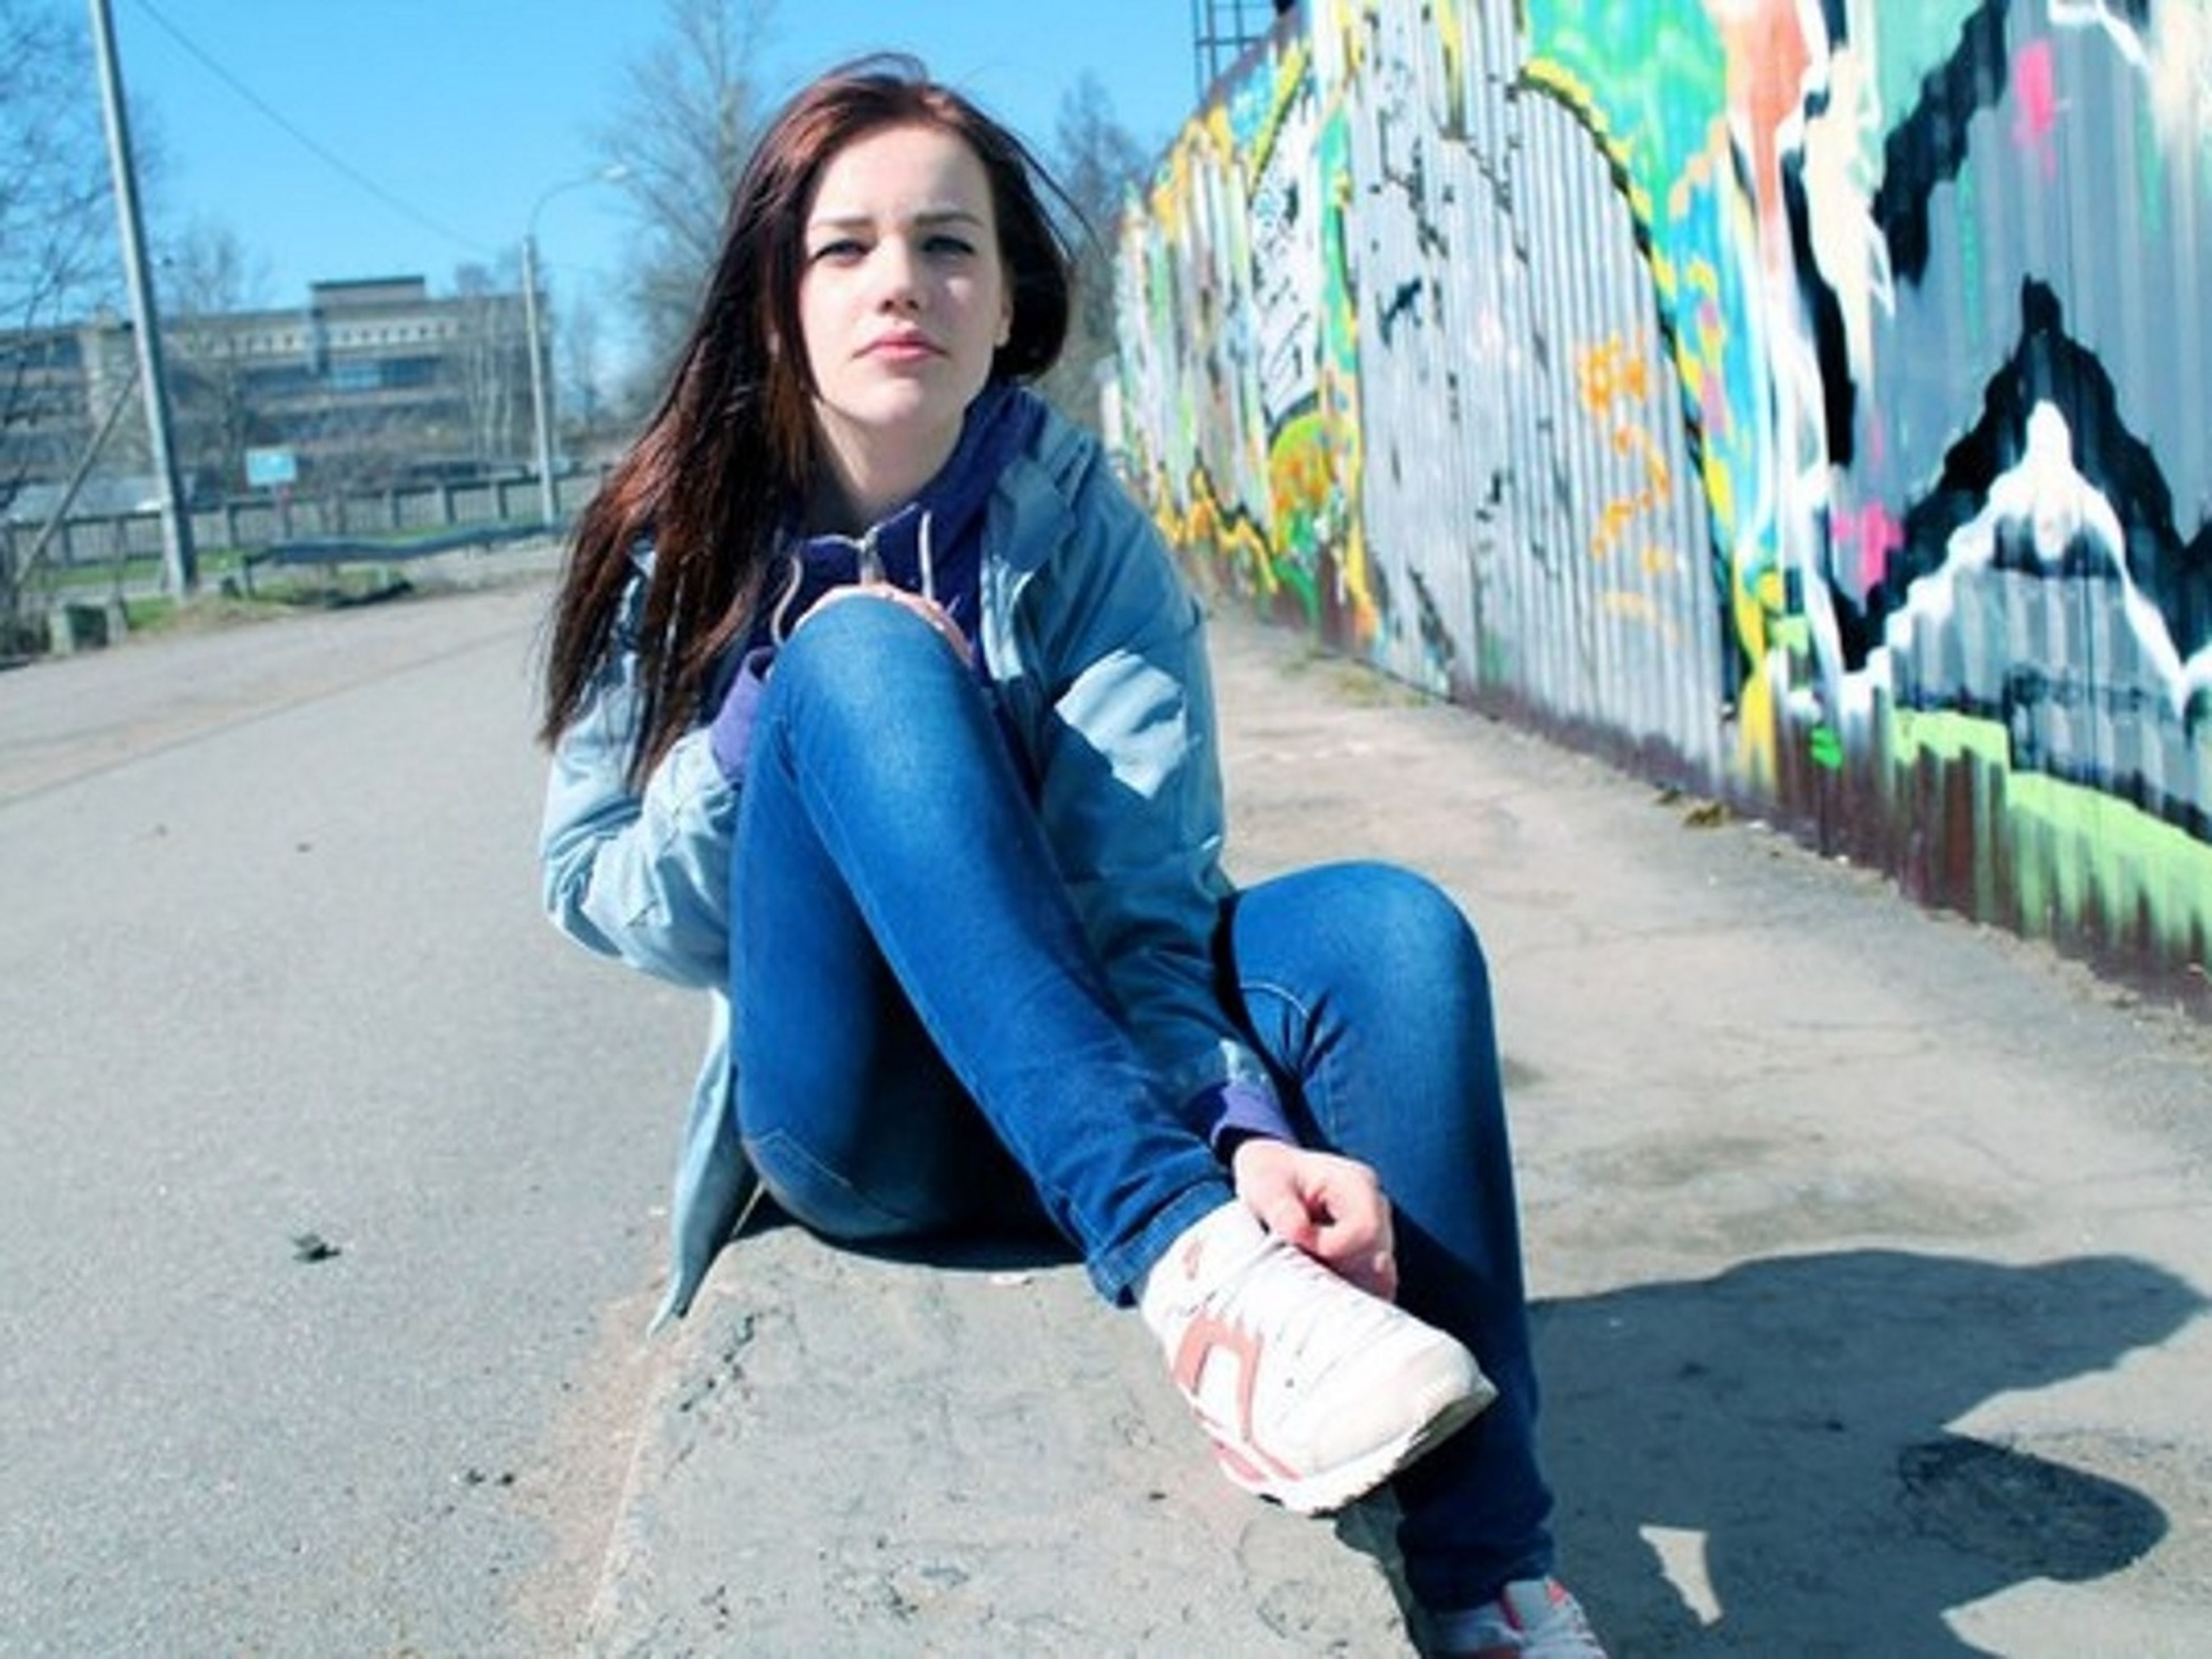 young adult, lifestyles, person, looking at camera, casual clothing, portrait, young women, front view, leisure activity, smiling, standing, long hair, happiness, full length, three quarter length, graffiti